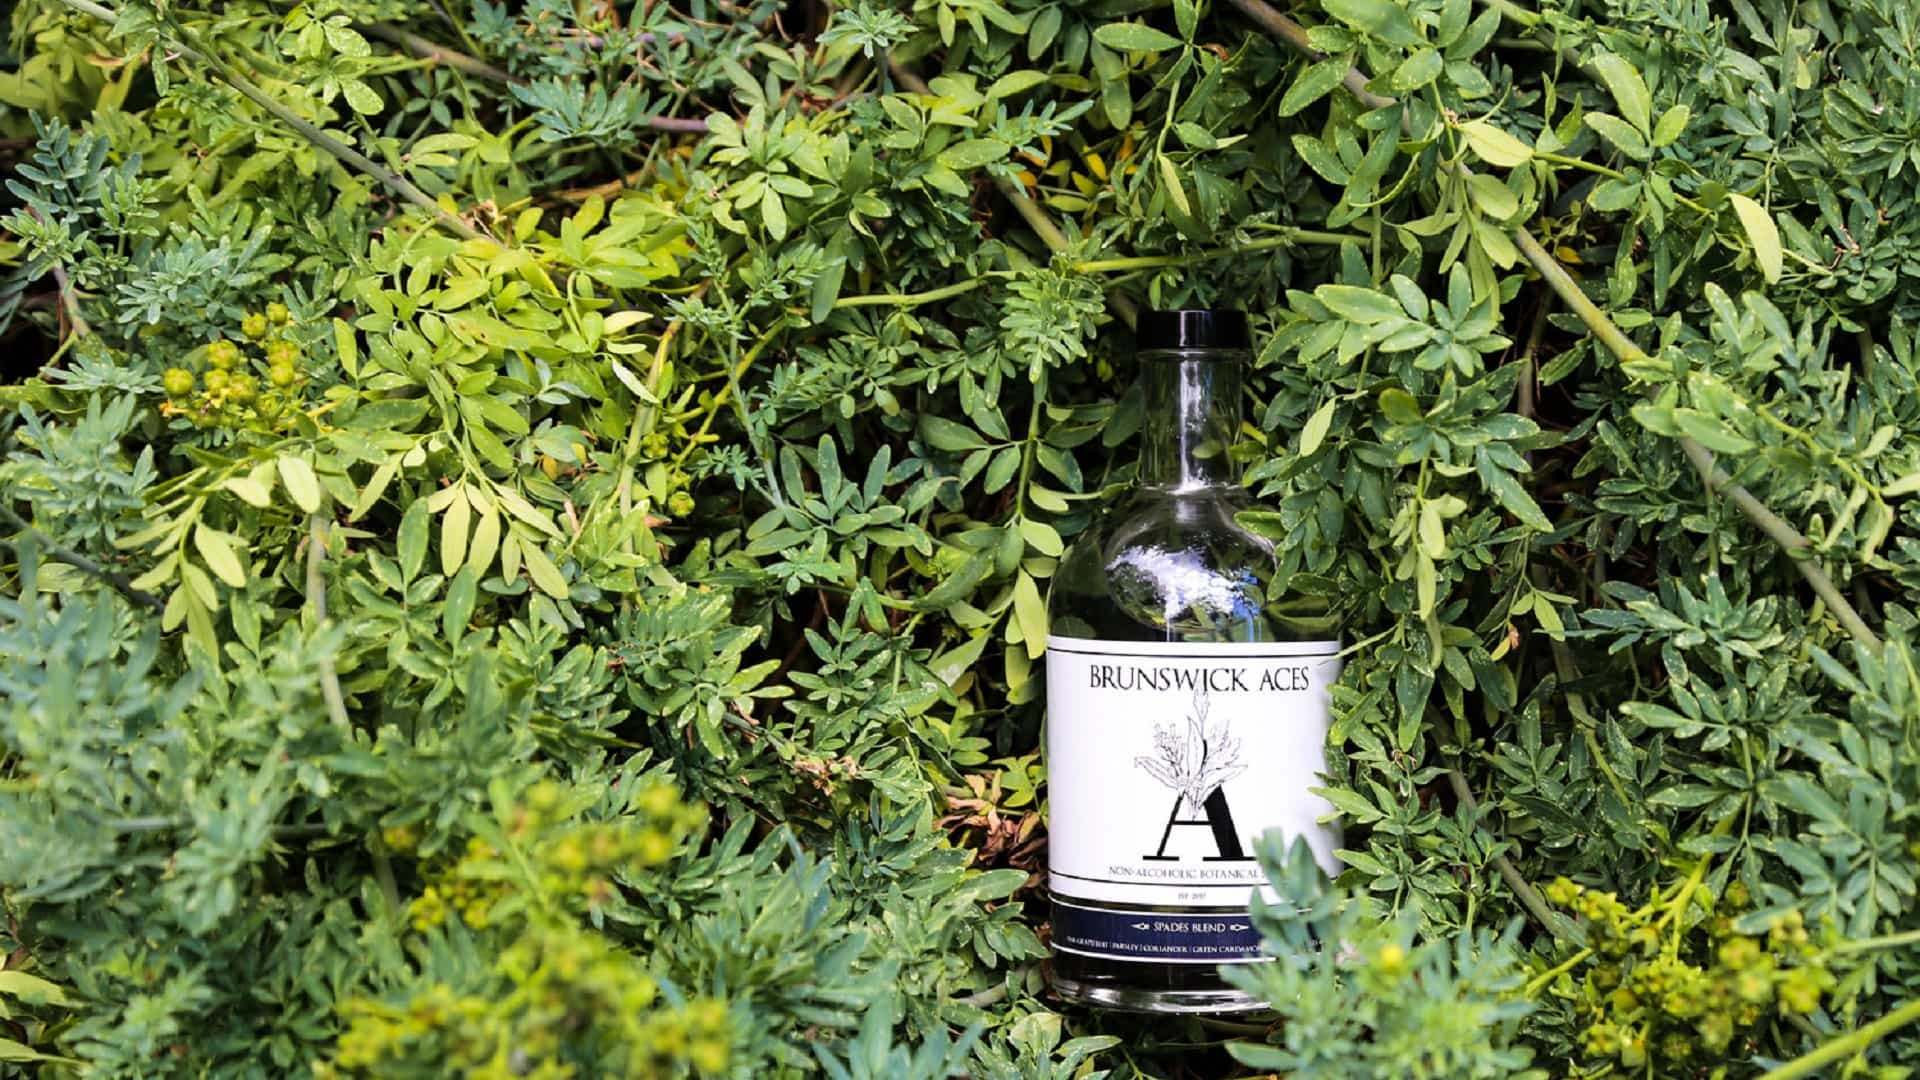 Brunswick Aces Is Australia's First Non-Alcoholic Gin